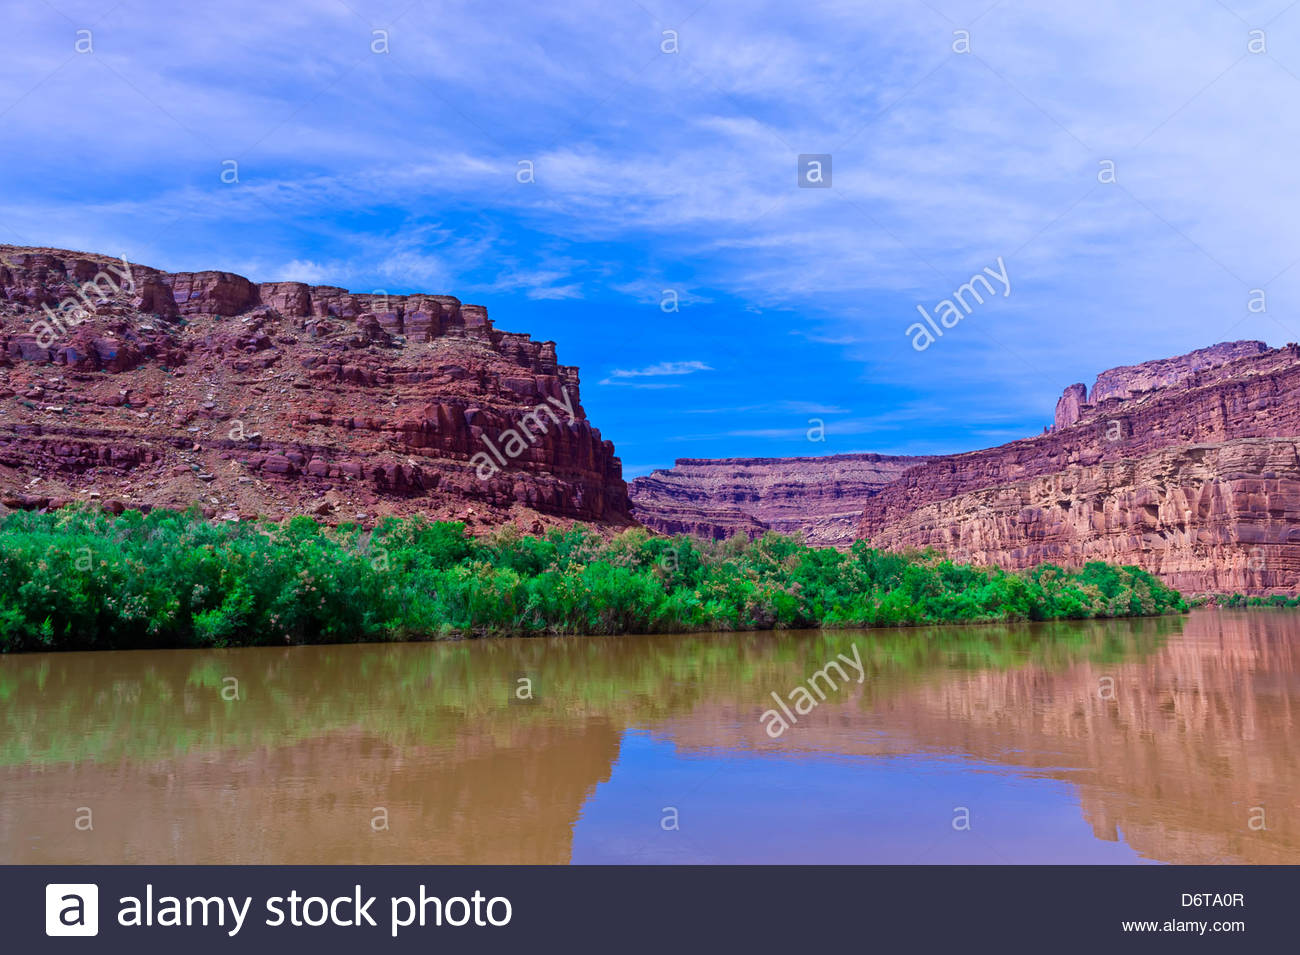 Meander Canyon section of the Colorado River, Utah, USA. - Stock Image